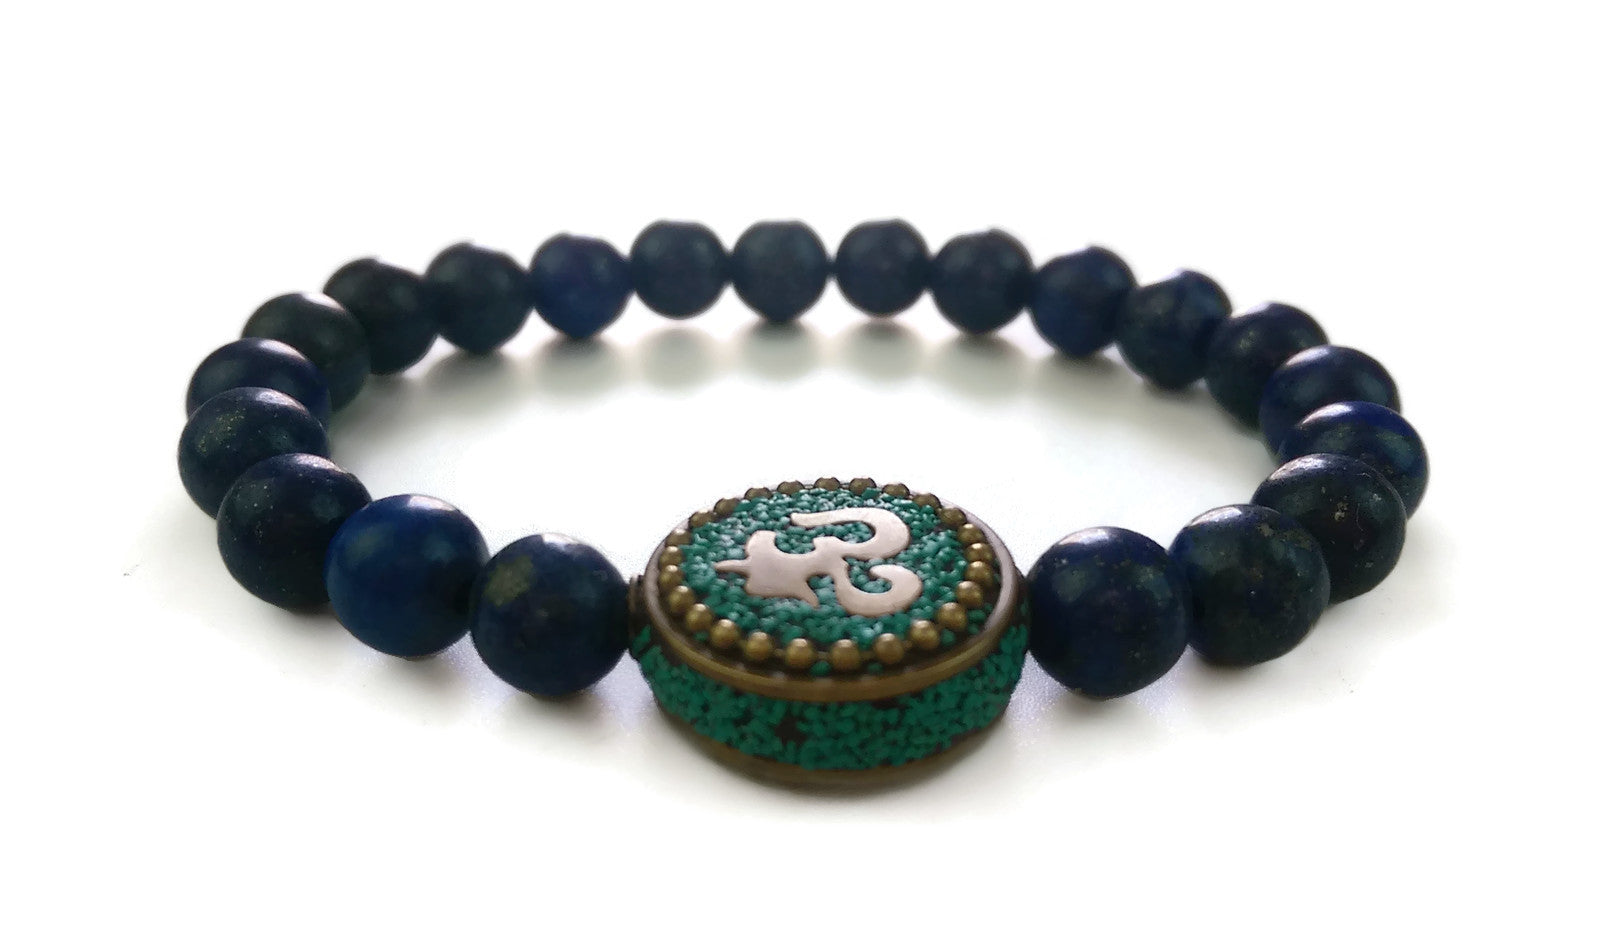 Nepal Chakra Collection 8mm Lapis Lazuli Stone Bead Wrist Mala Stretch Bracelet Thrid Eye Chakra